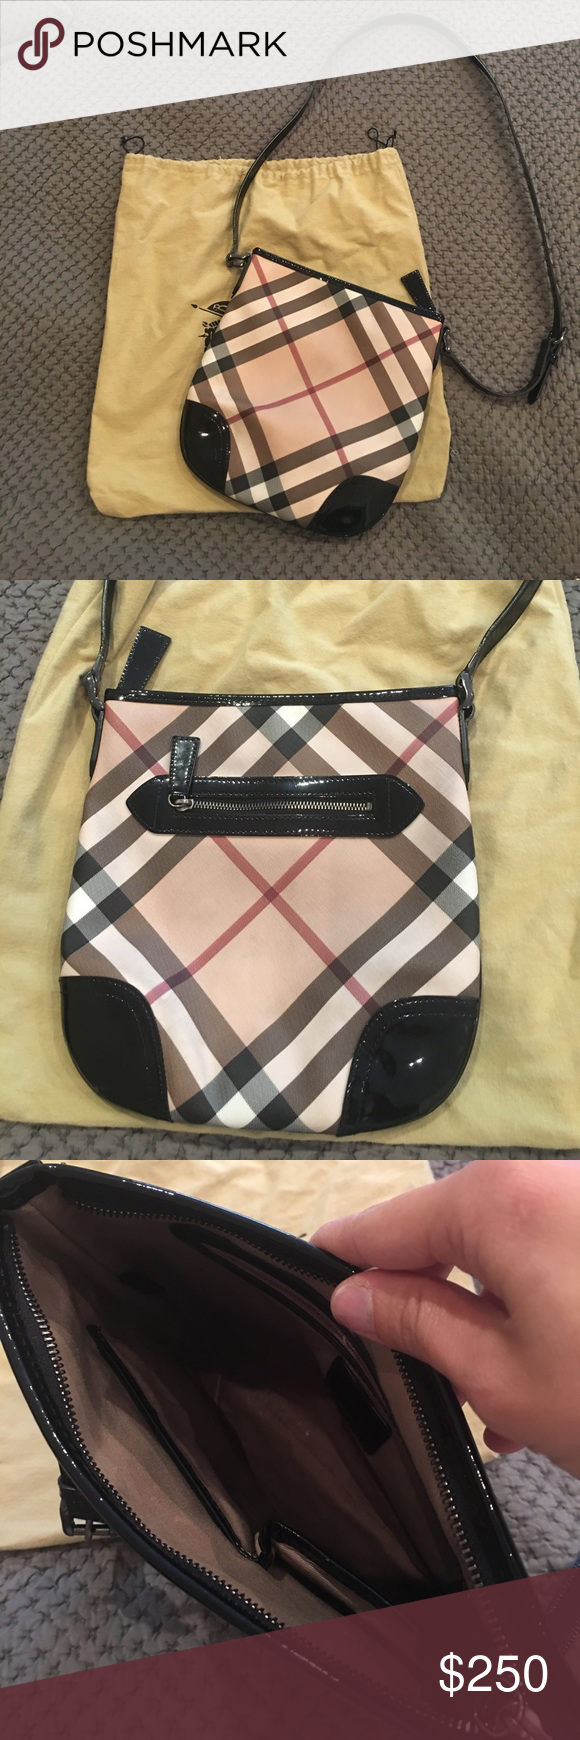 247a8eee4667 Authentic Burberry crossbody messenger bag Burberry crossbody bag. Printed  coated canvas crossbody bag with leather